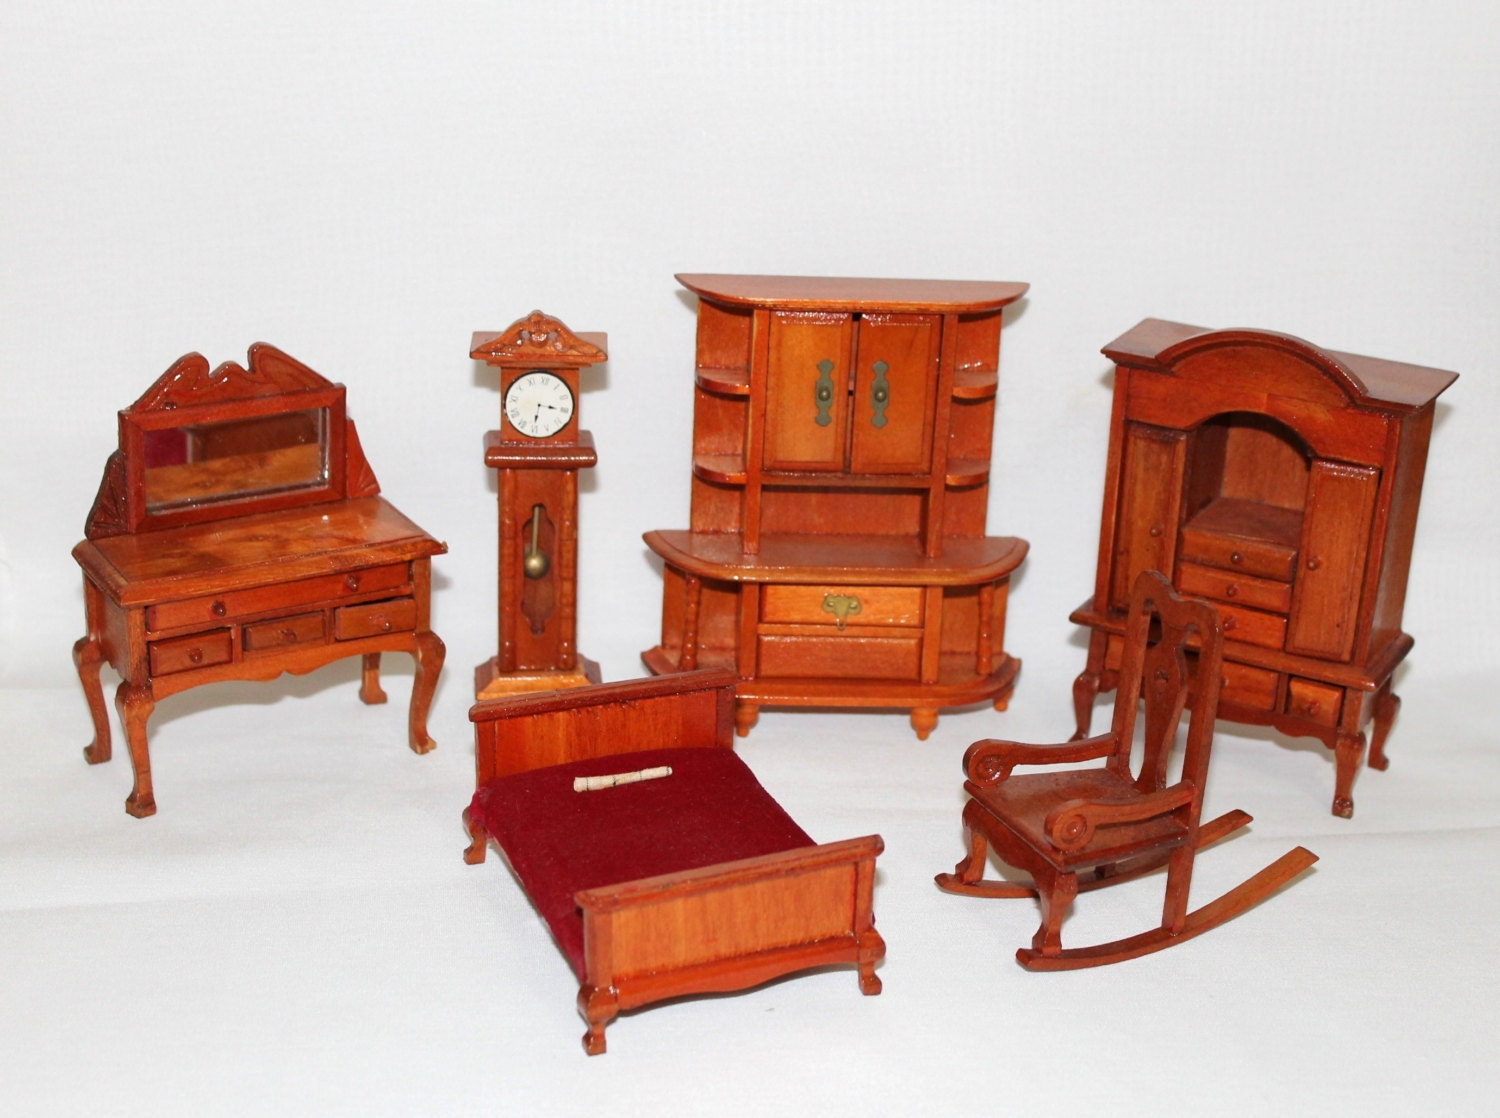 Old Wooden Furniture ~ Vintage wooden dollhouse furniture lot piece antique